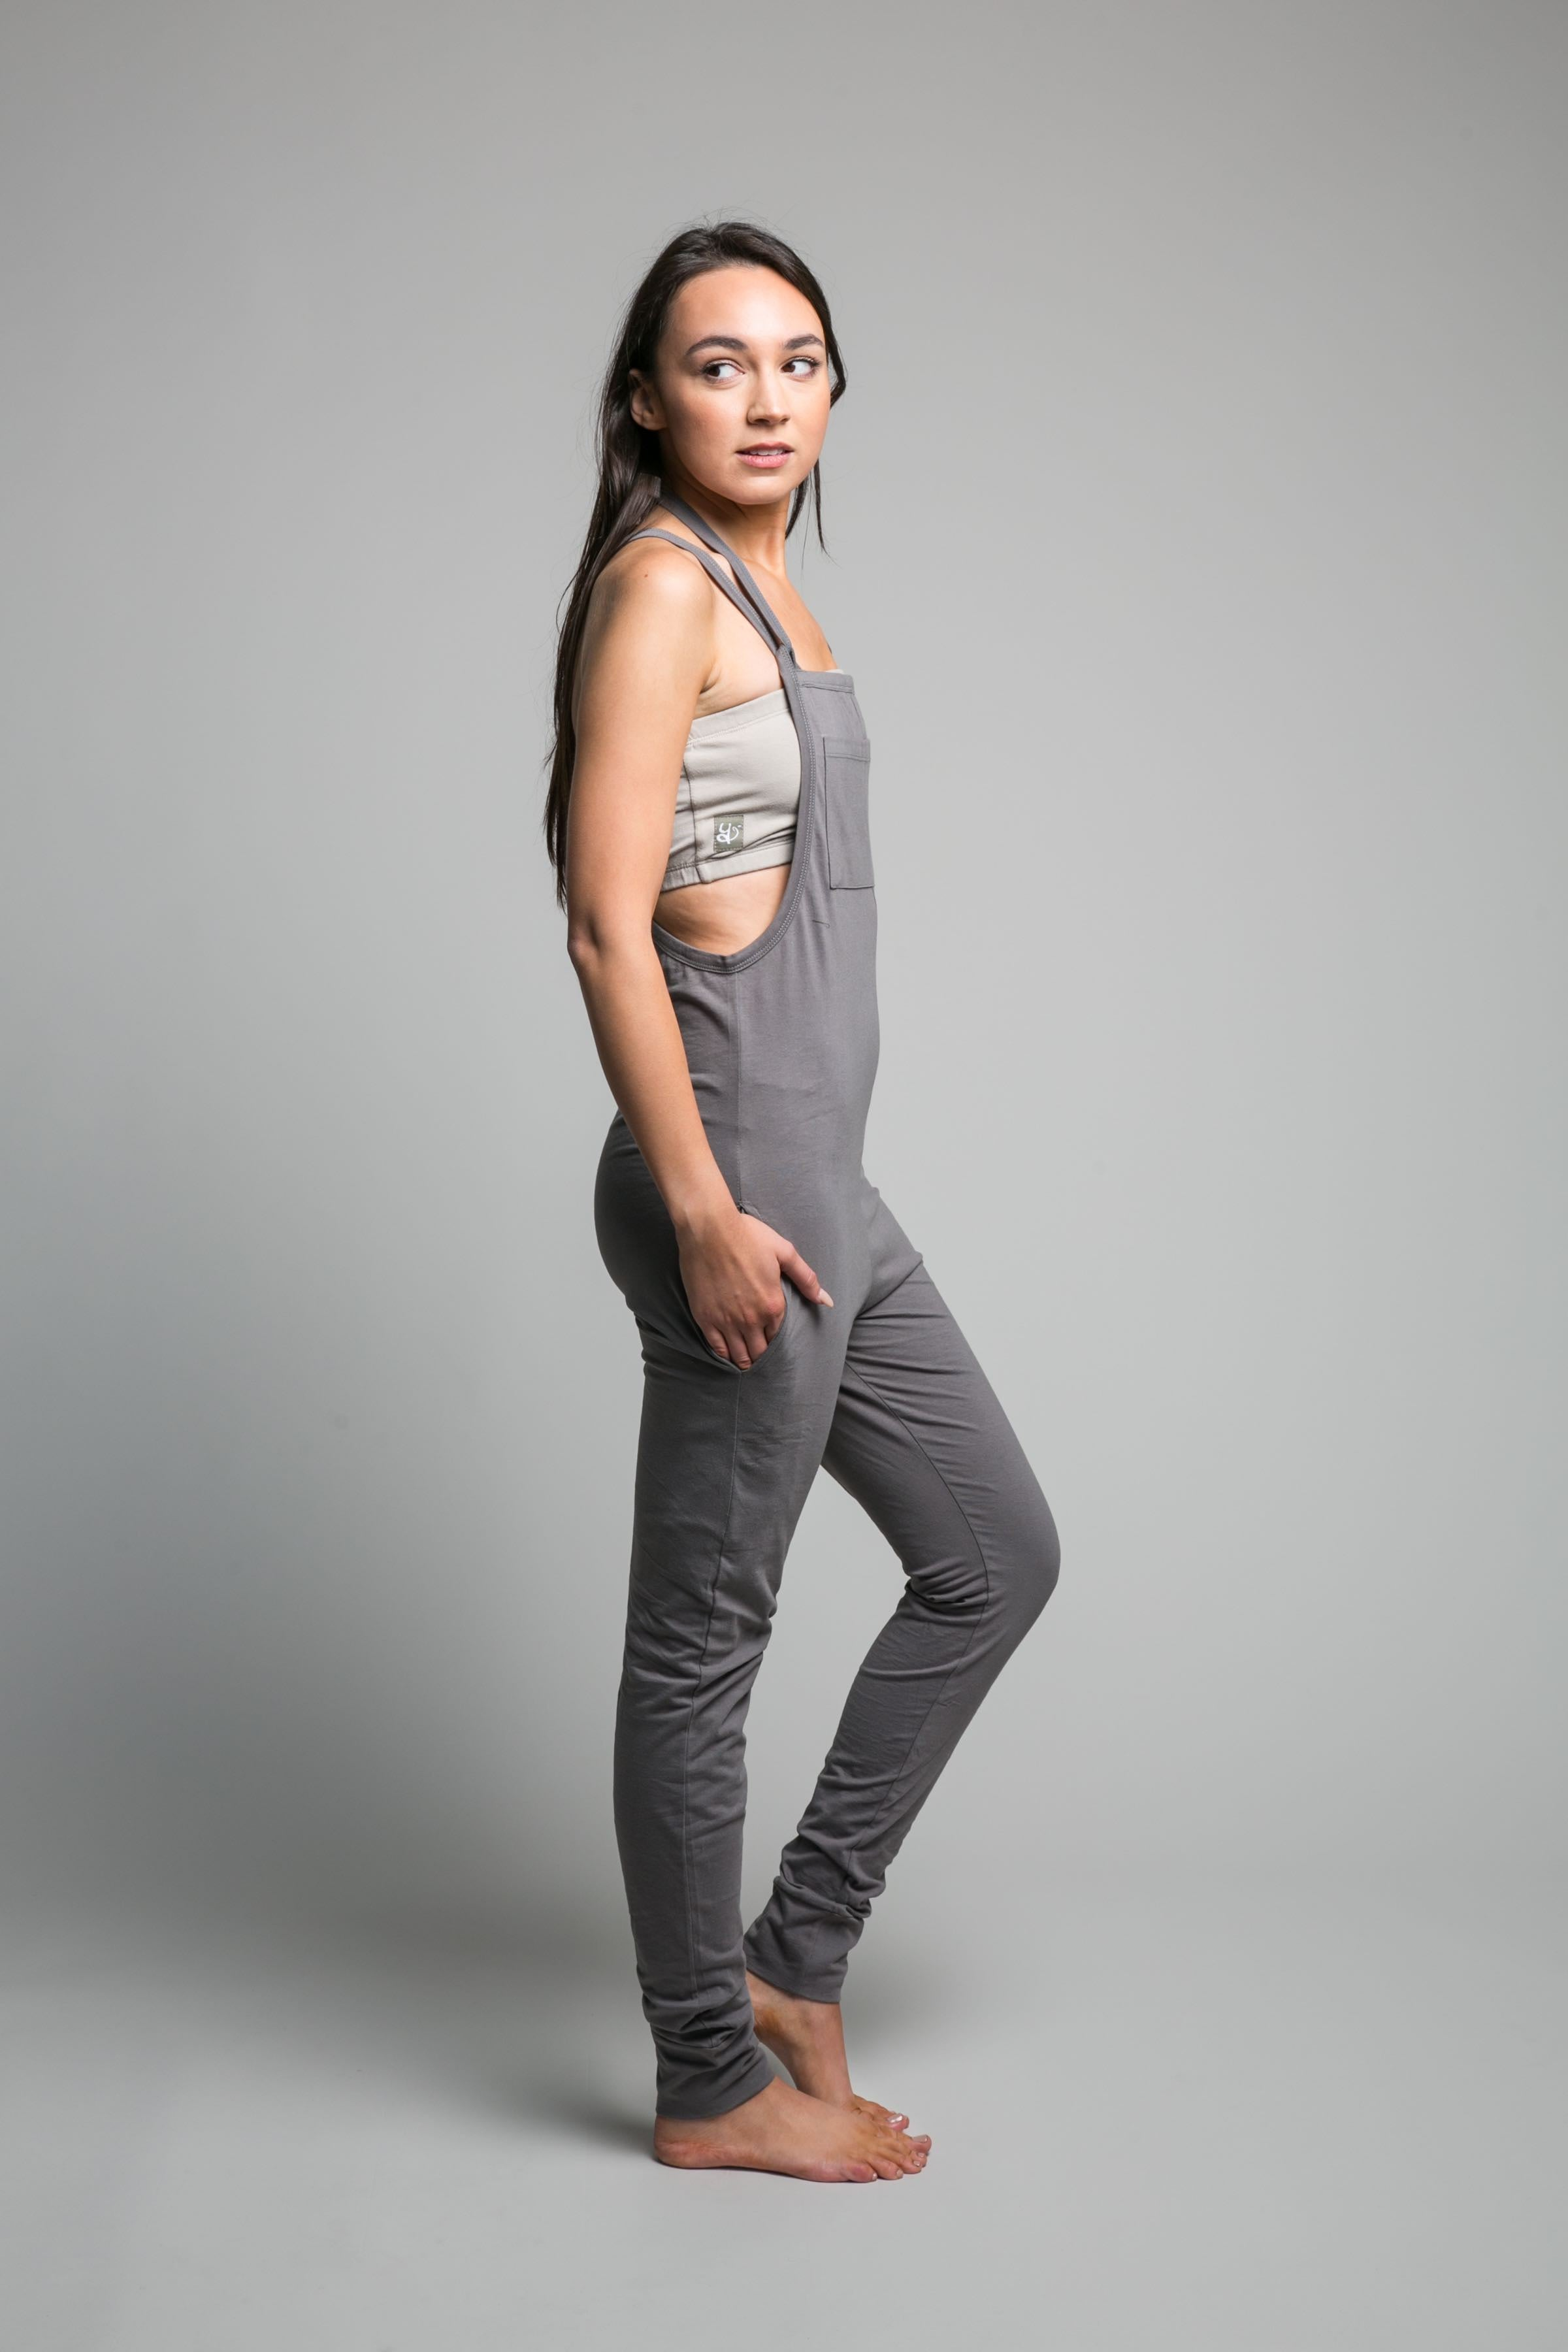 'Mudra' Drop Crotch Yoga Jumpsuit Women's Charcoal